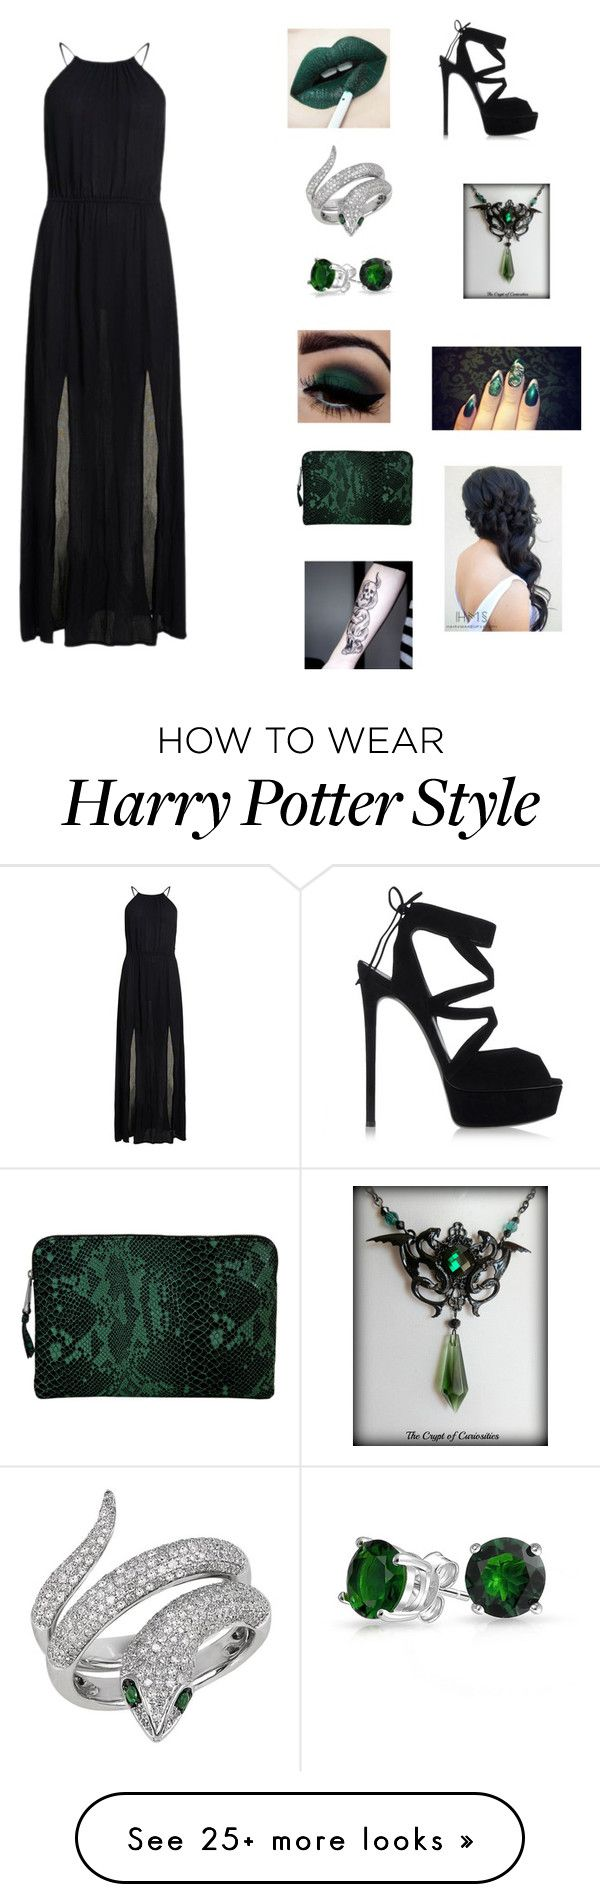 """Slytherin Yule ball "" by queenofdarkness22 on Polyvore featuring Superdry, Effy Jewelry, Bling Jewelry, Inge Christopher and Casadei"